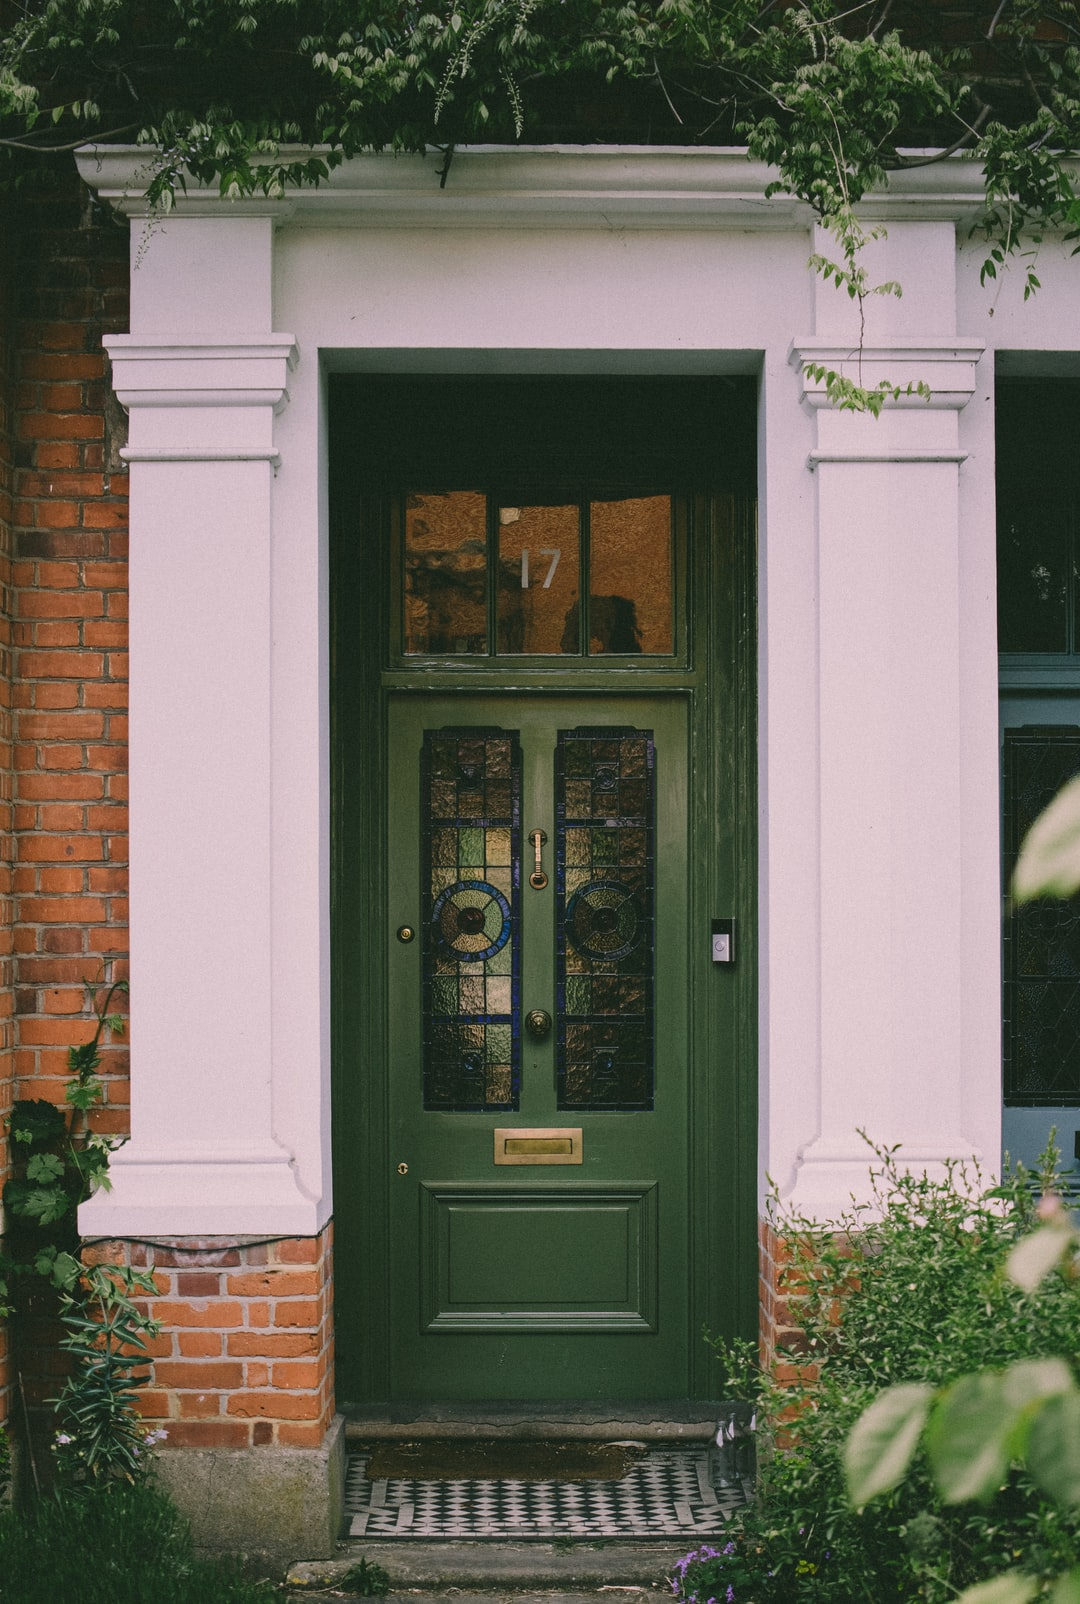 Green door, surrounded by plants.